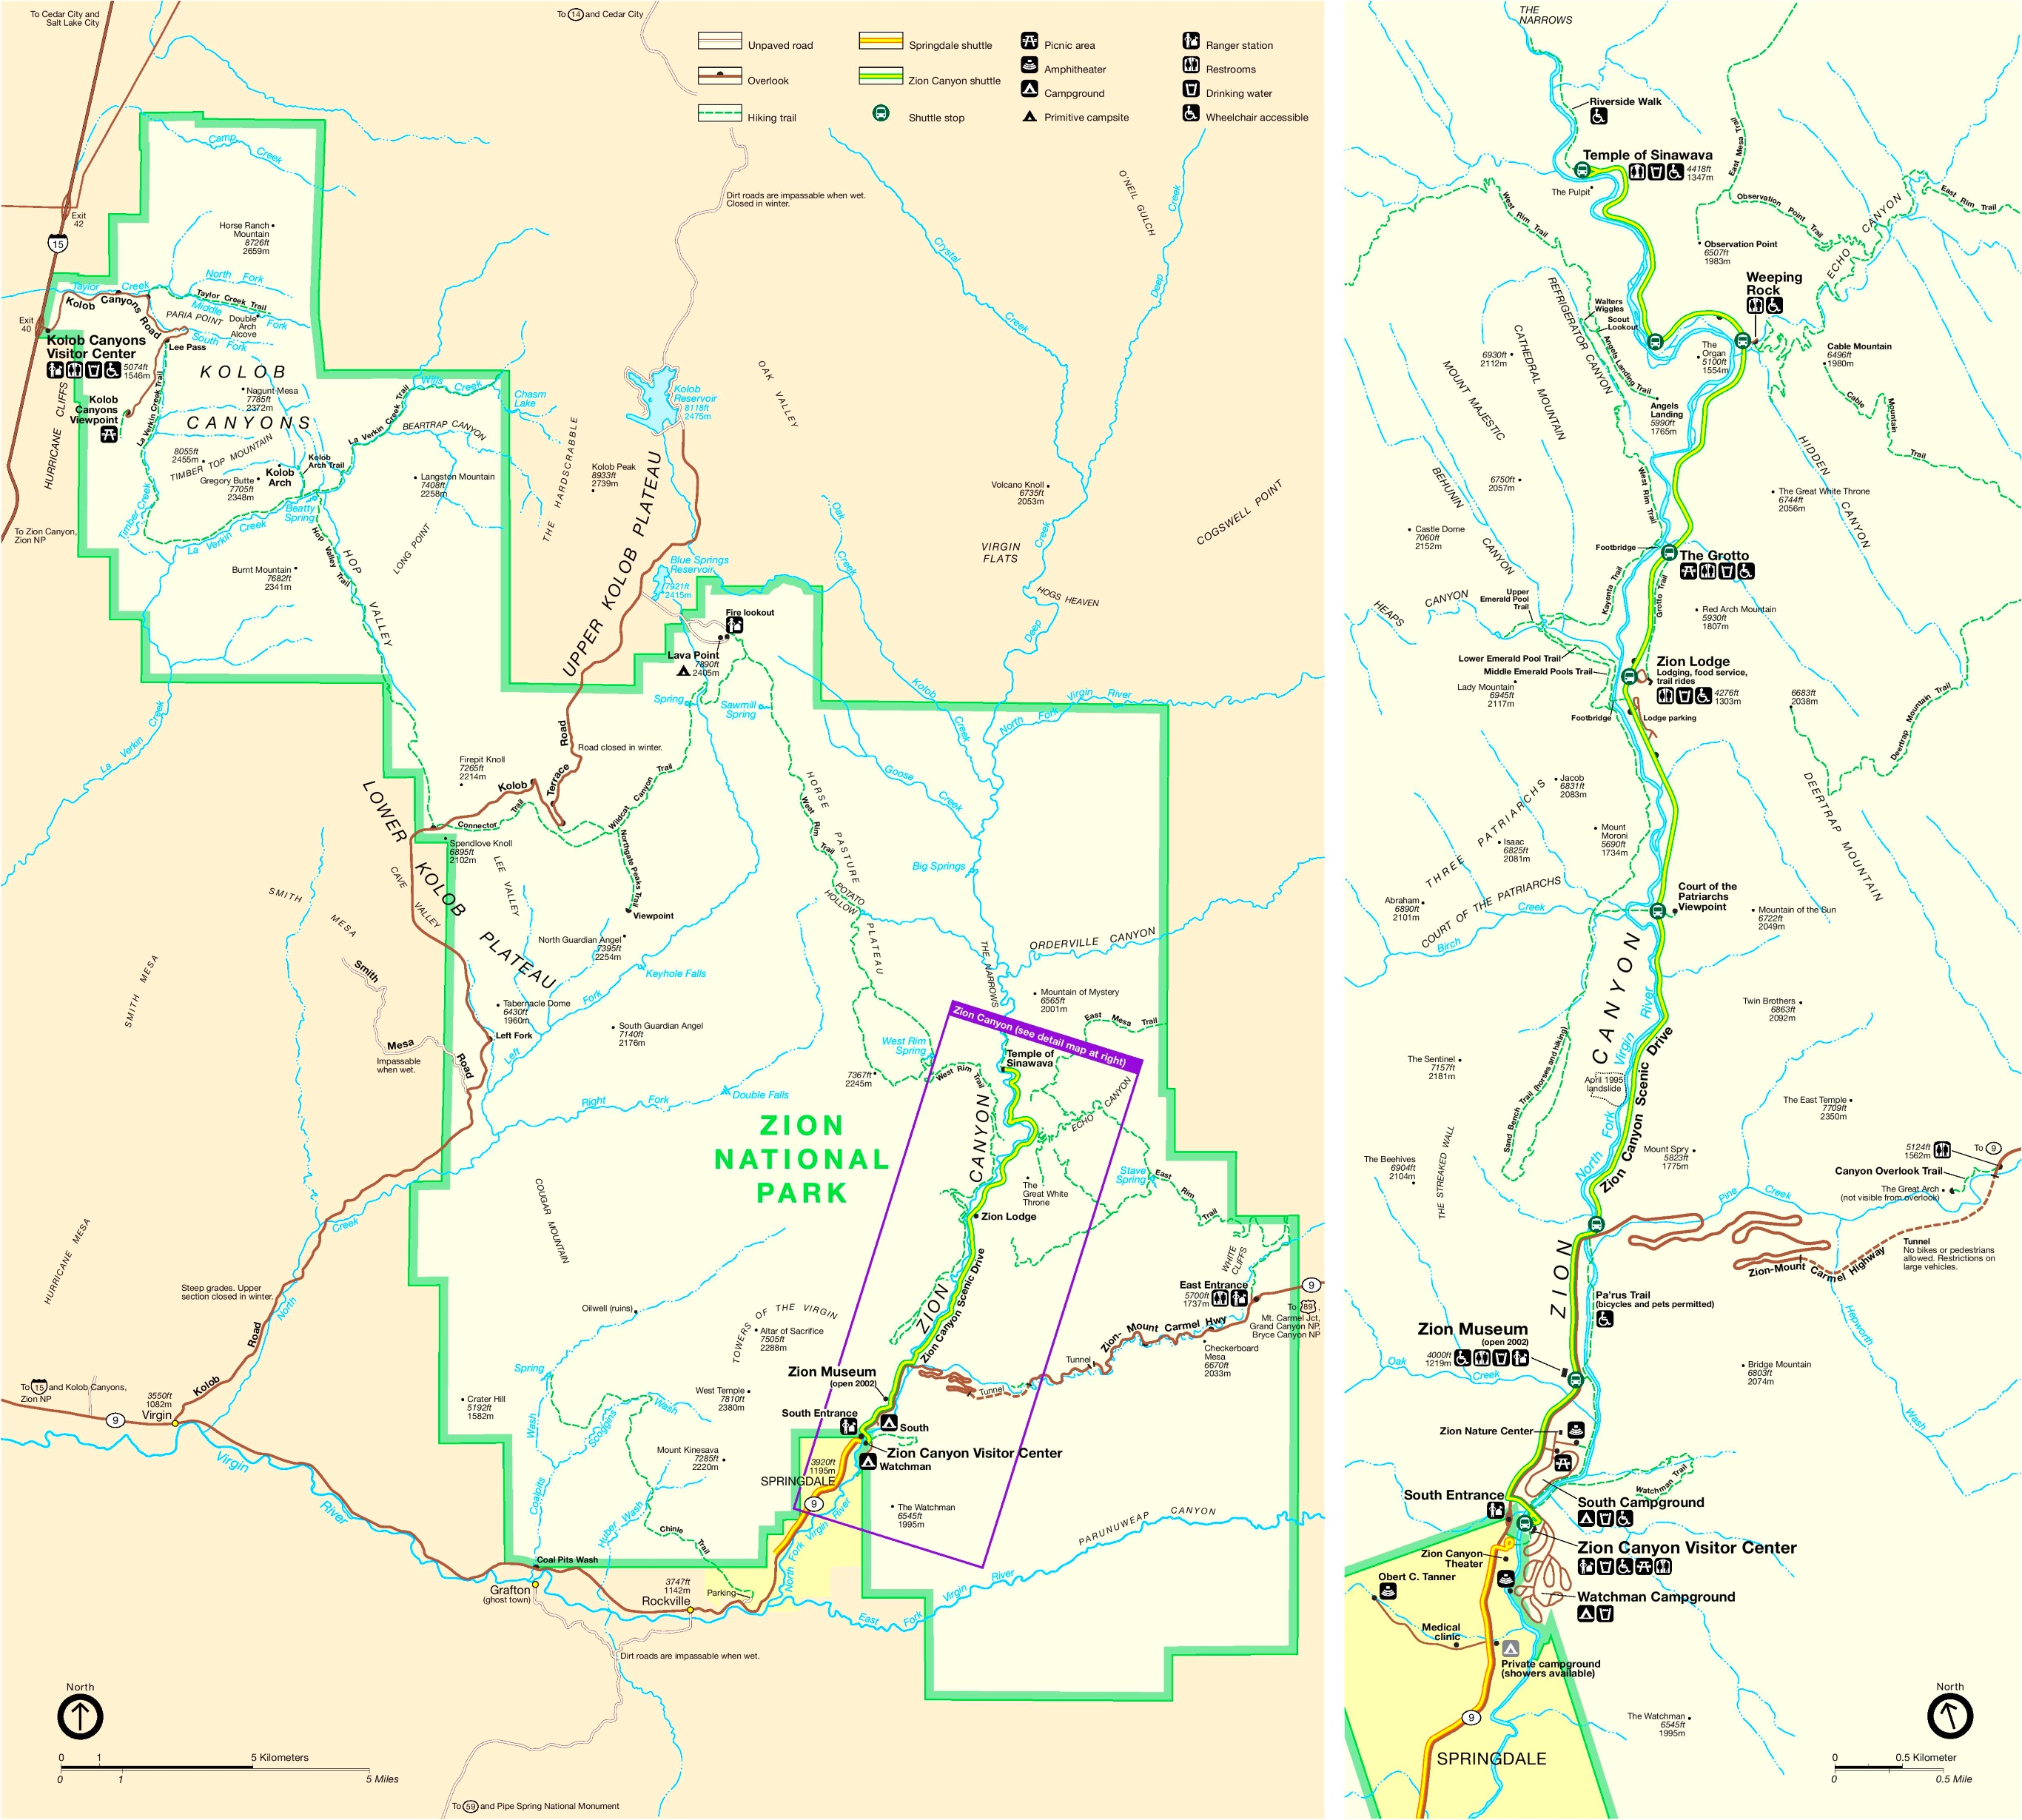 Zion National Park Trail Map - Map of zion national park